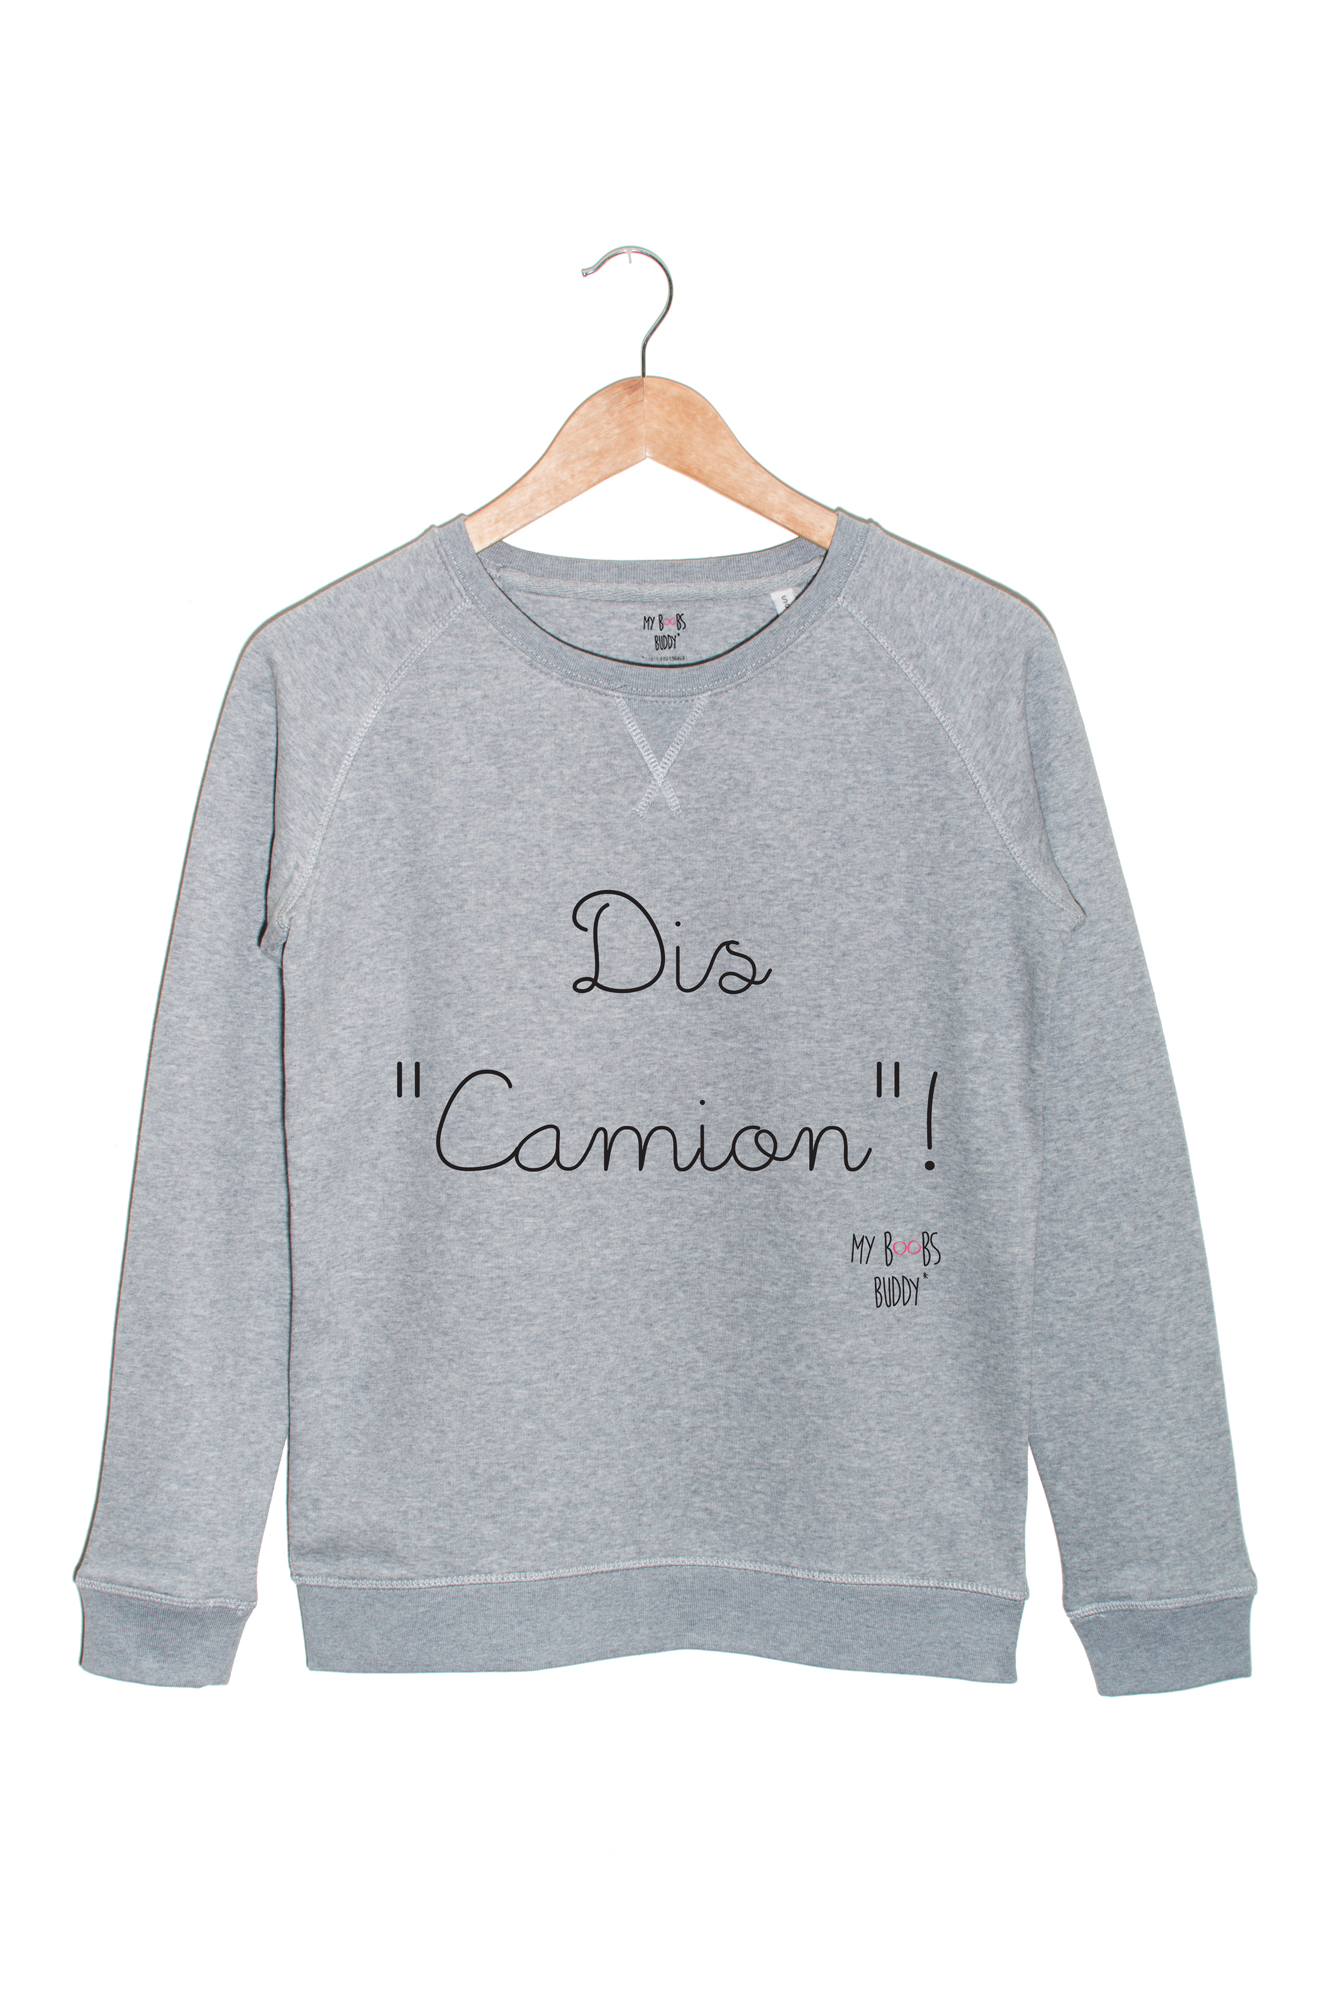 Le Camionneuse - Dis Camion - Sweat Pull